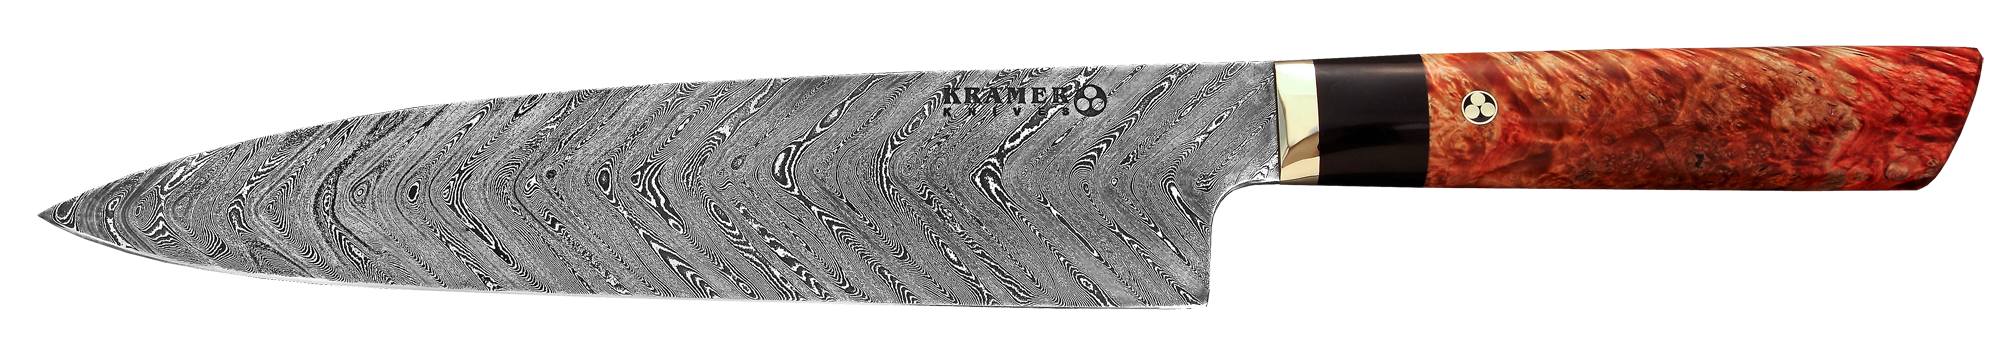 "9.5"" Gyuto Chevron Damascus, Box Elder Handle 